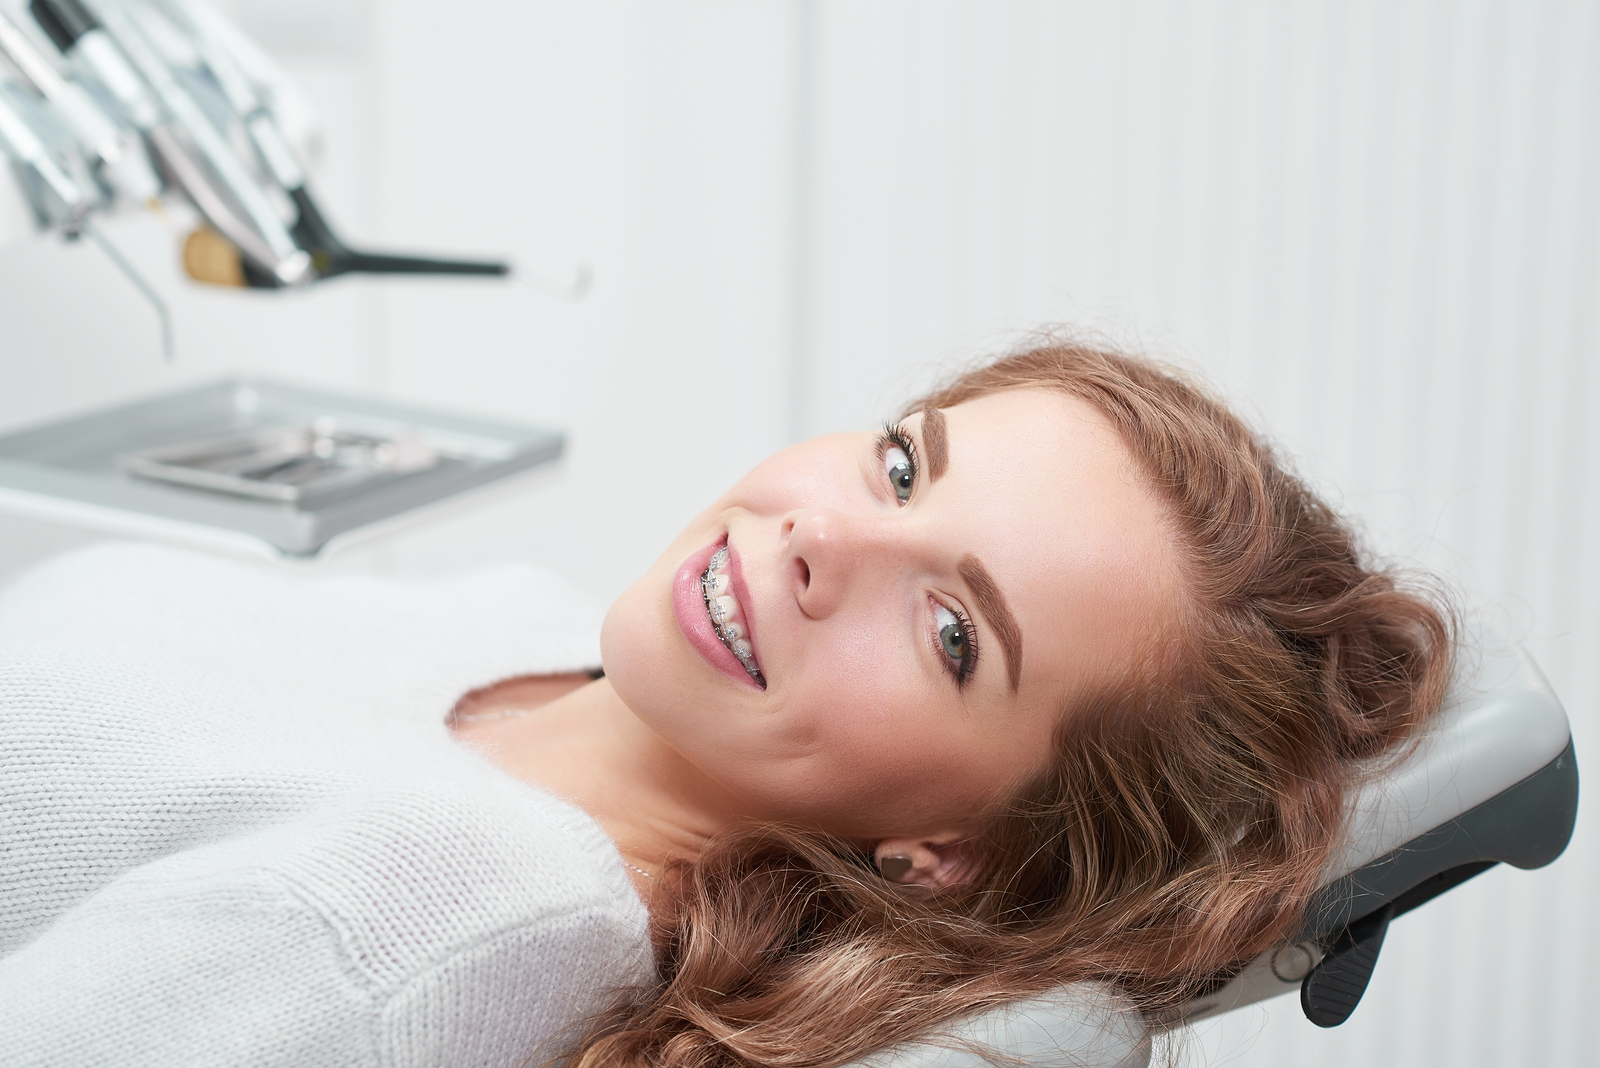 Dental Implant Placement Basics as a Step-by-Step Process